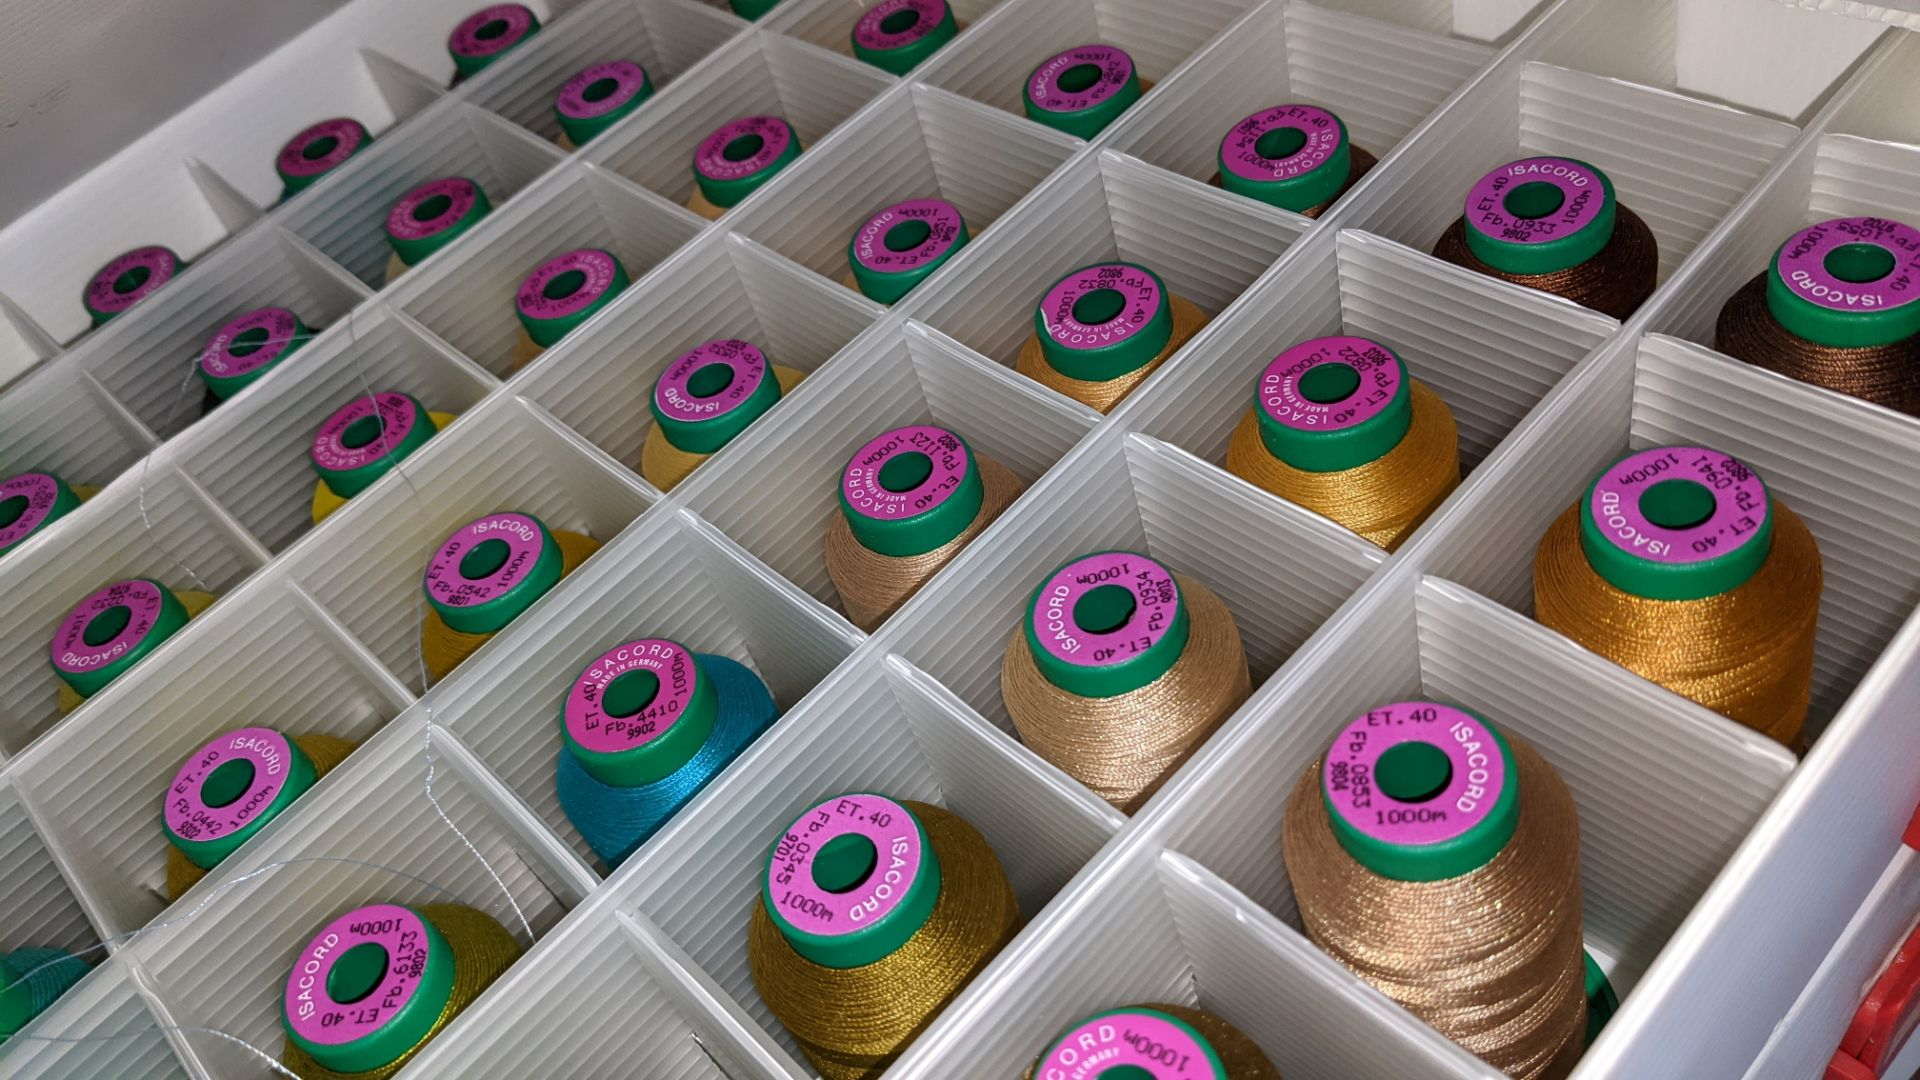 5 large cases of Ackermann Isacord thread - Image 7 of 13